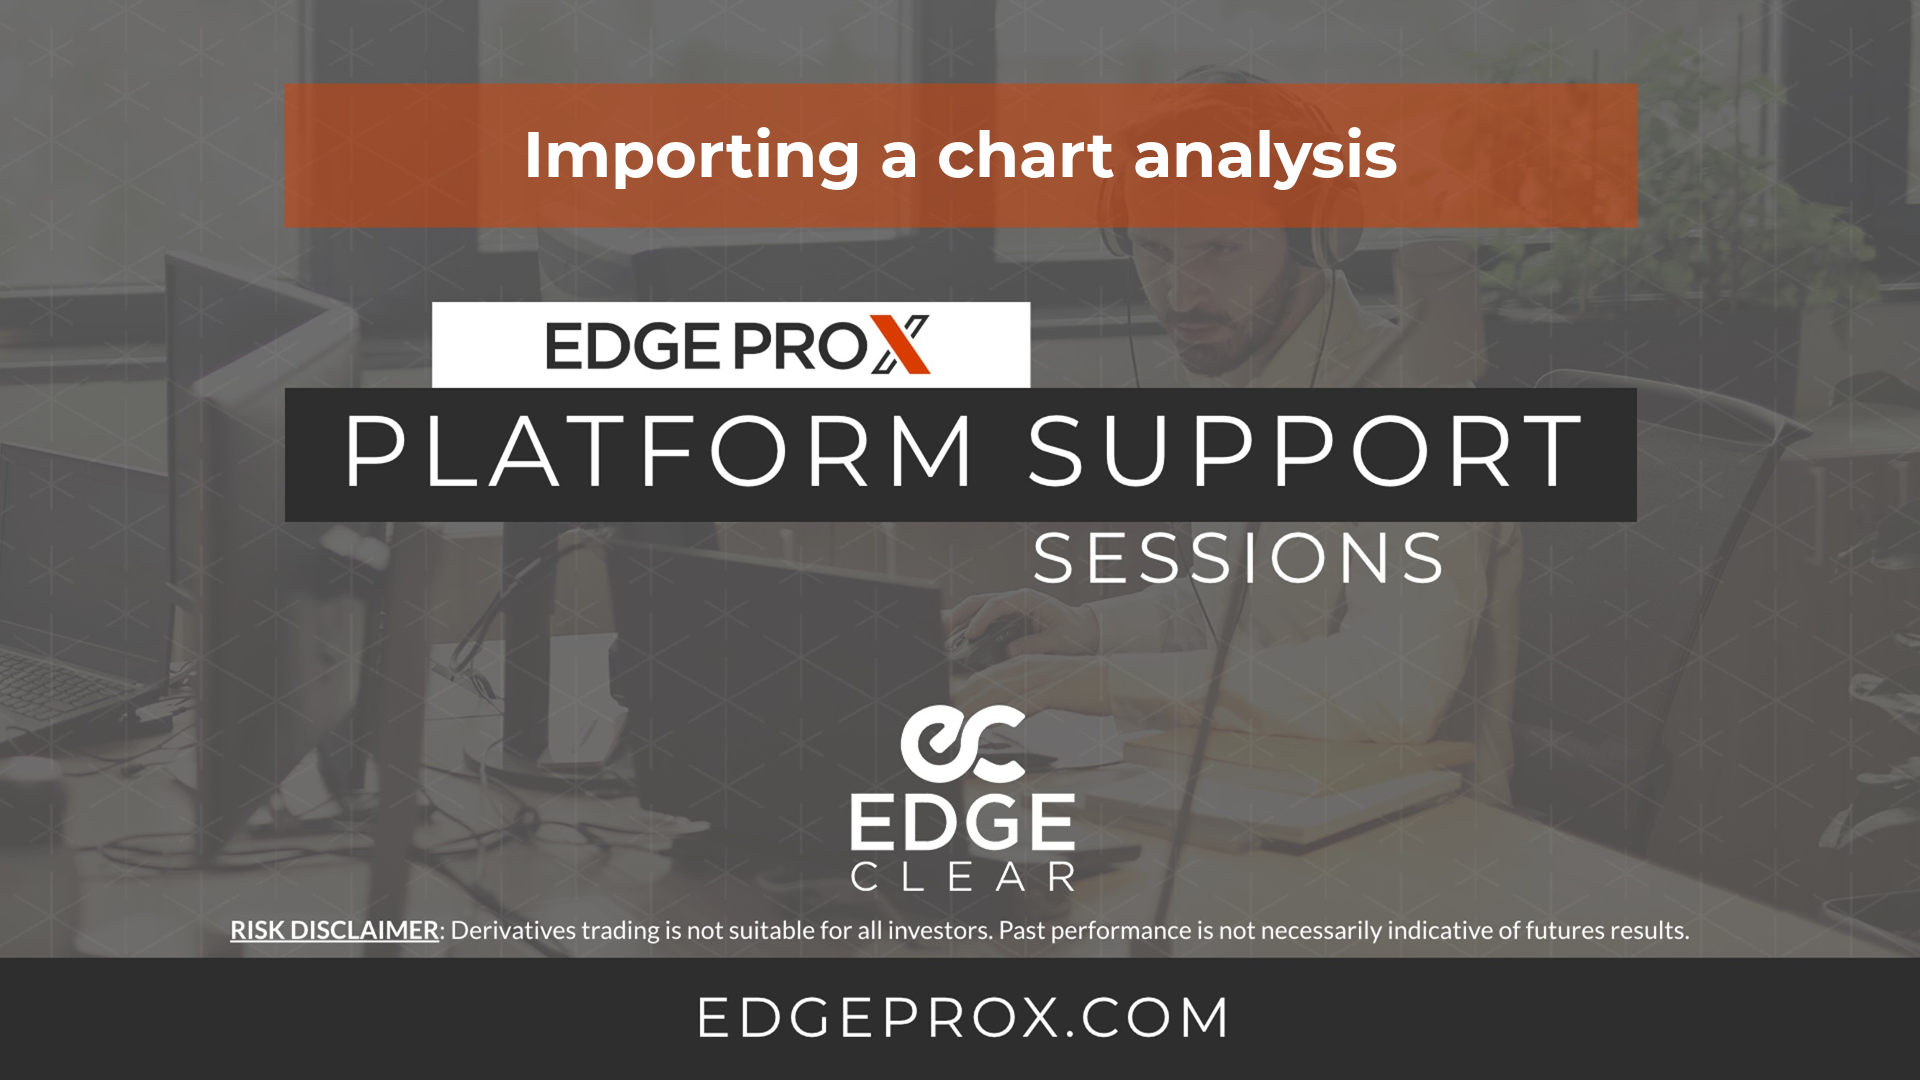 EdgeProX - Importing a chart analysis